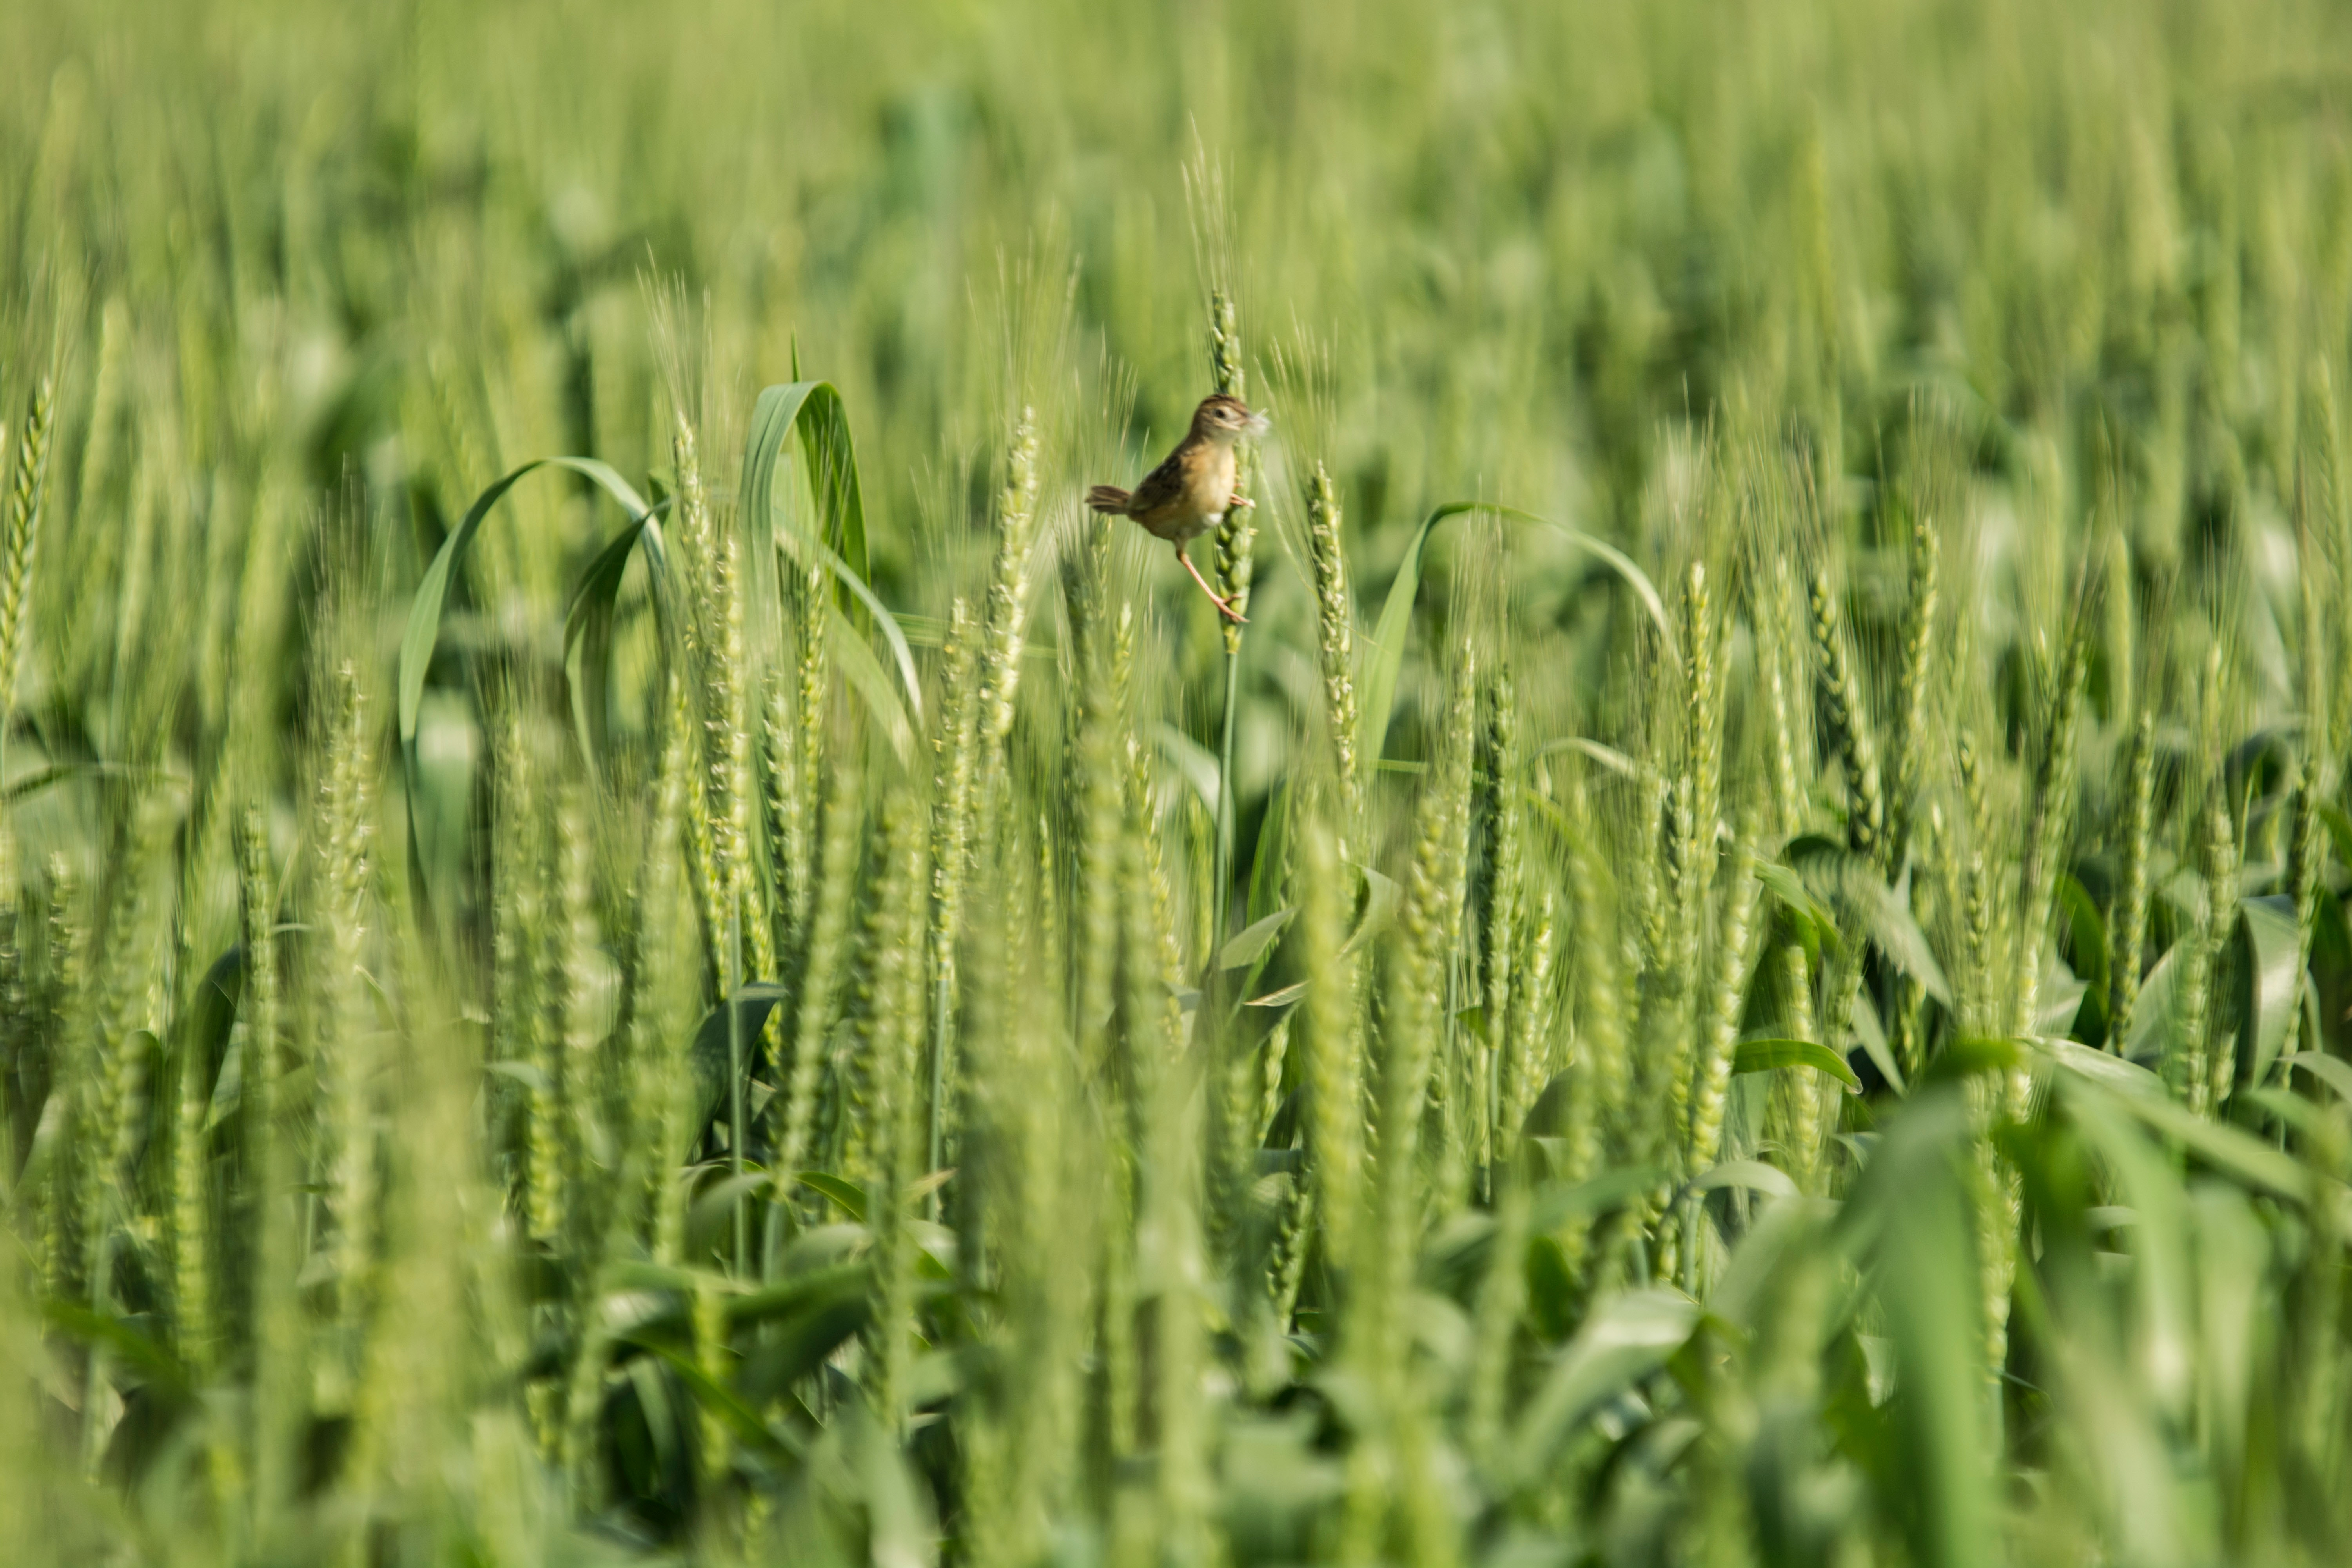 Brown Seedeater Bird, Agriculture, Growth, Wheat, Summer, HQ Photo